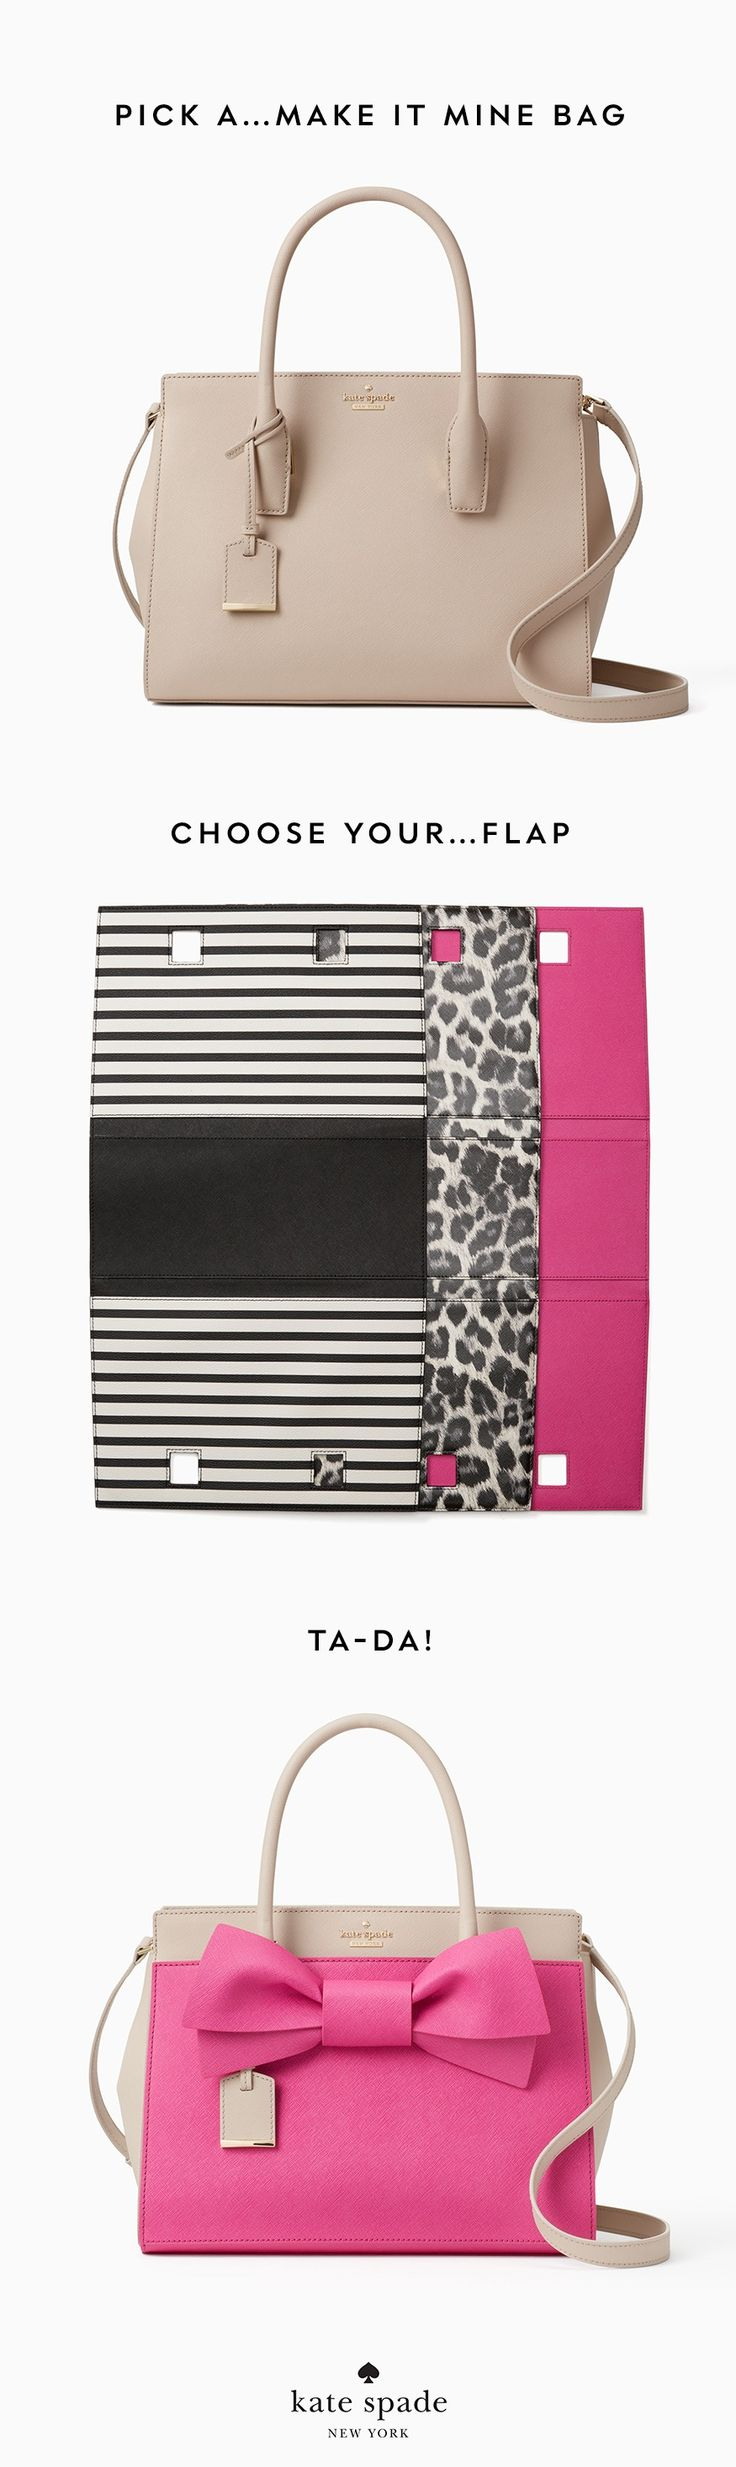 can one have too many wraps for a make it mine candace? nope. make yours in the personalization shop.